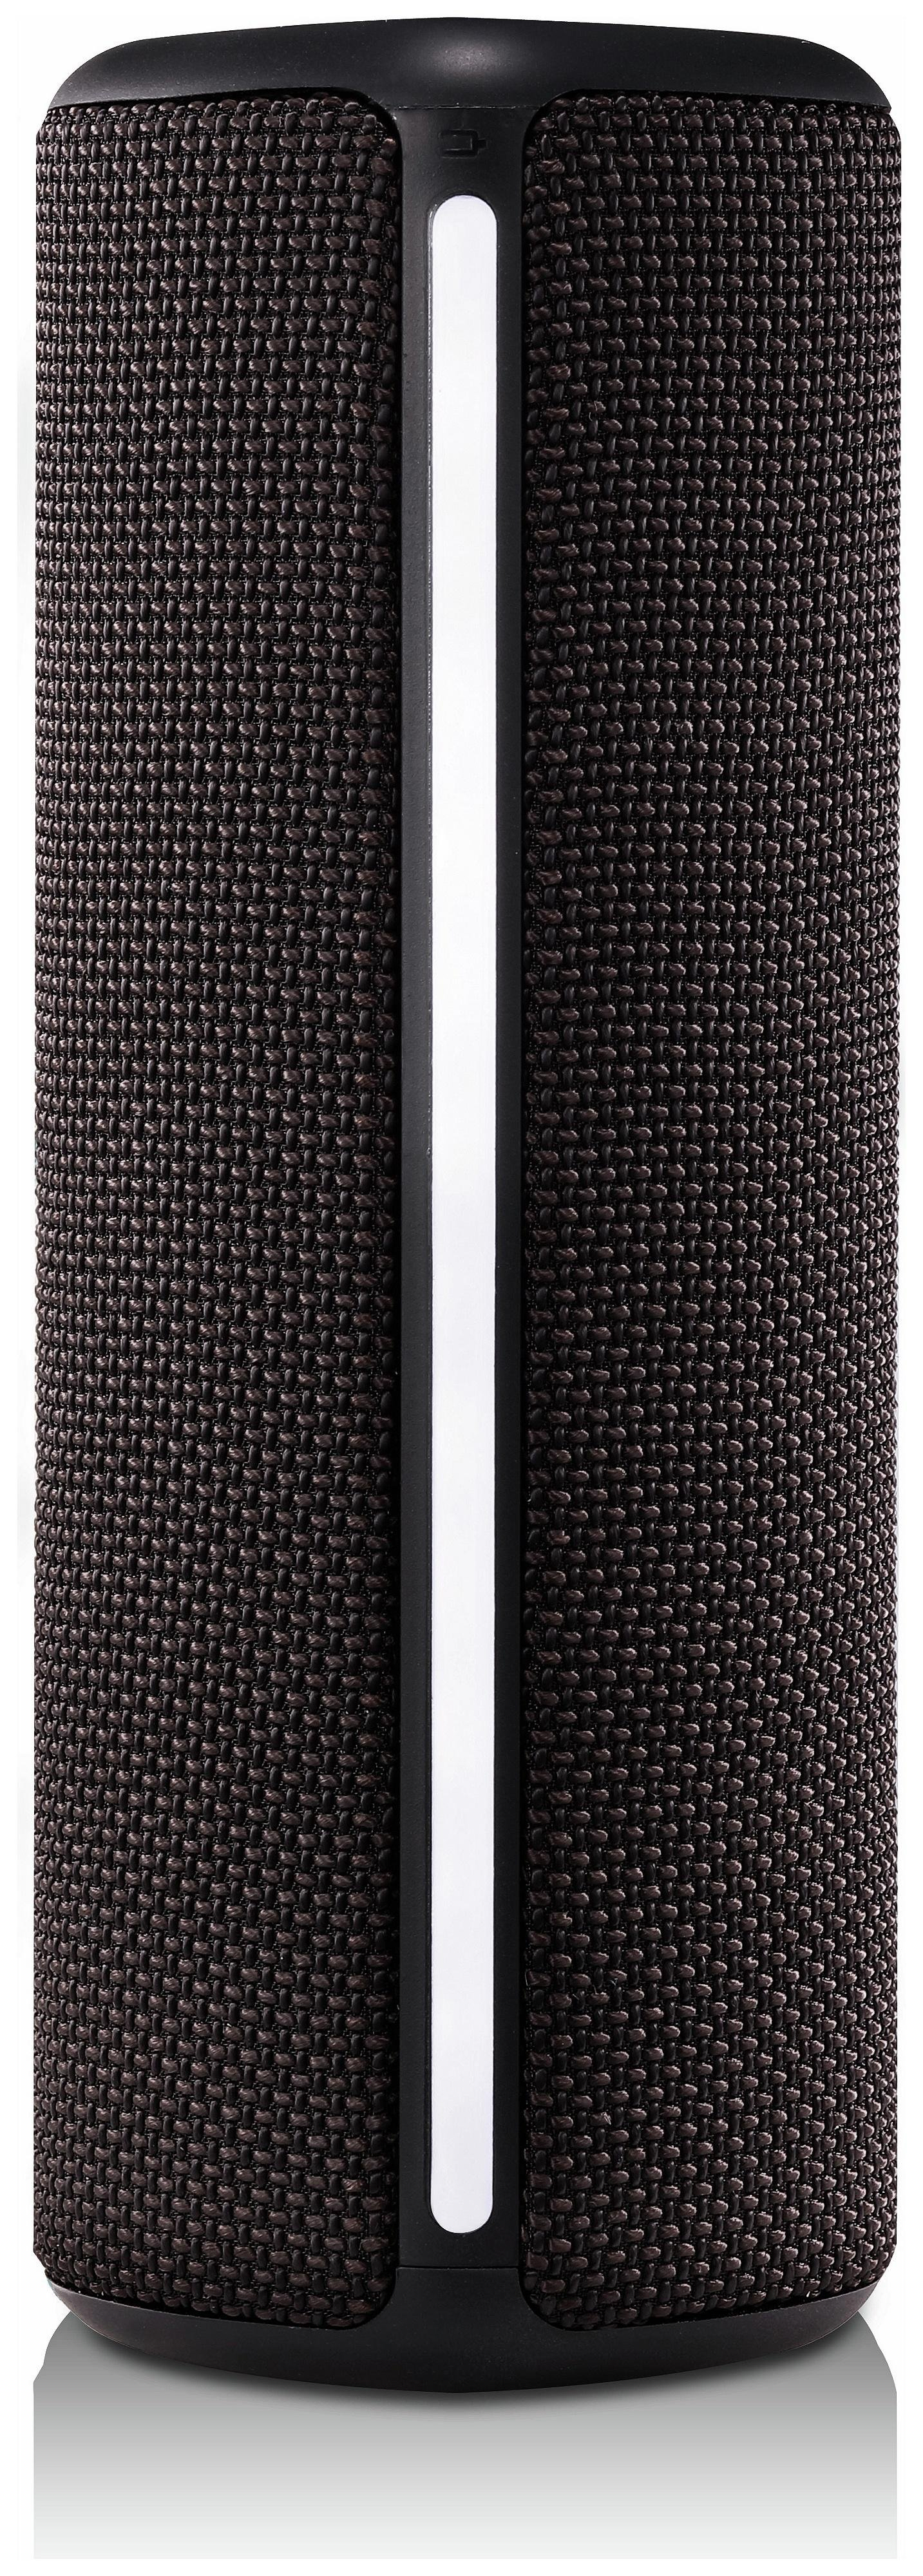 LG LG PH4 Portable Bluetooth Speaker - Black.